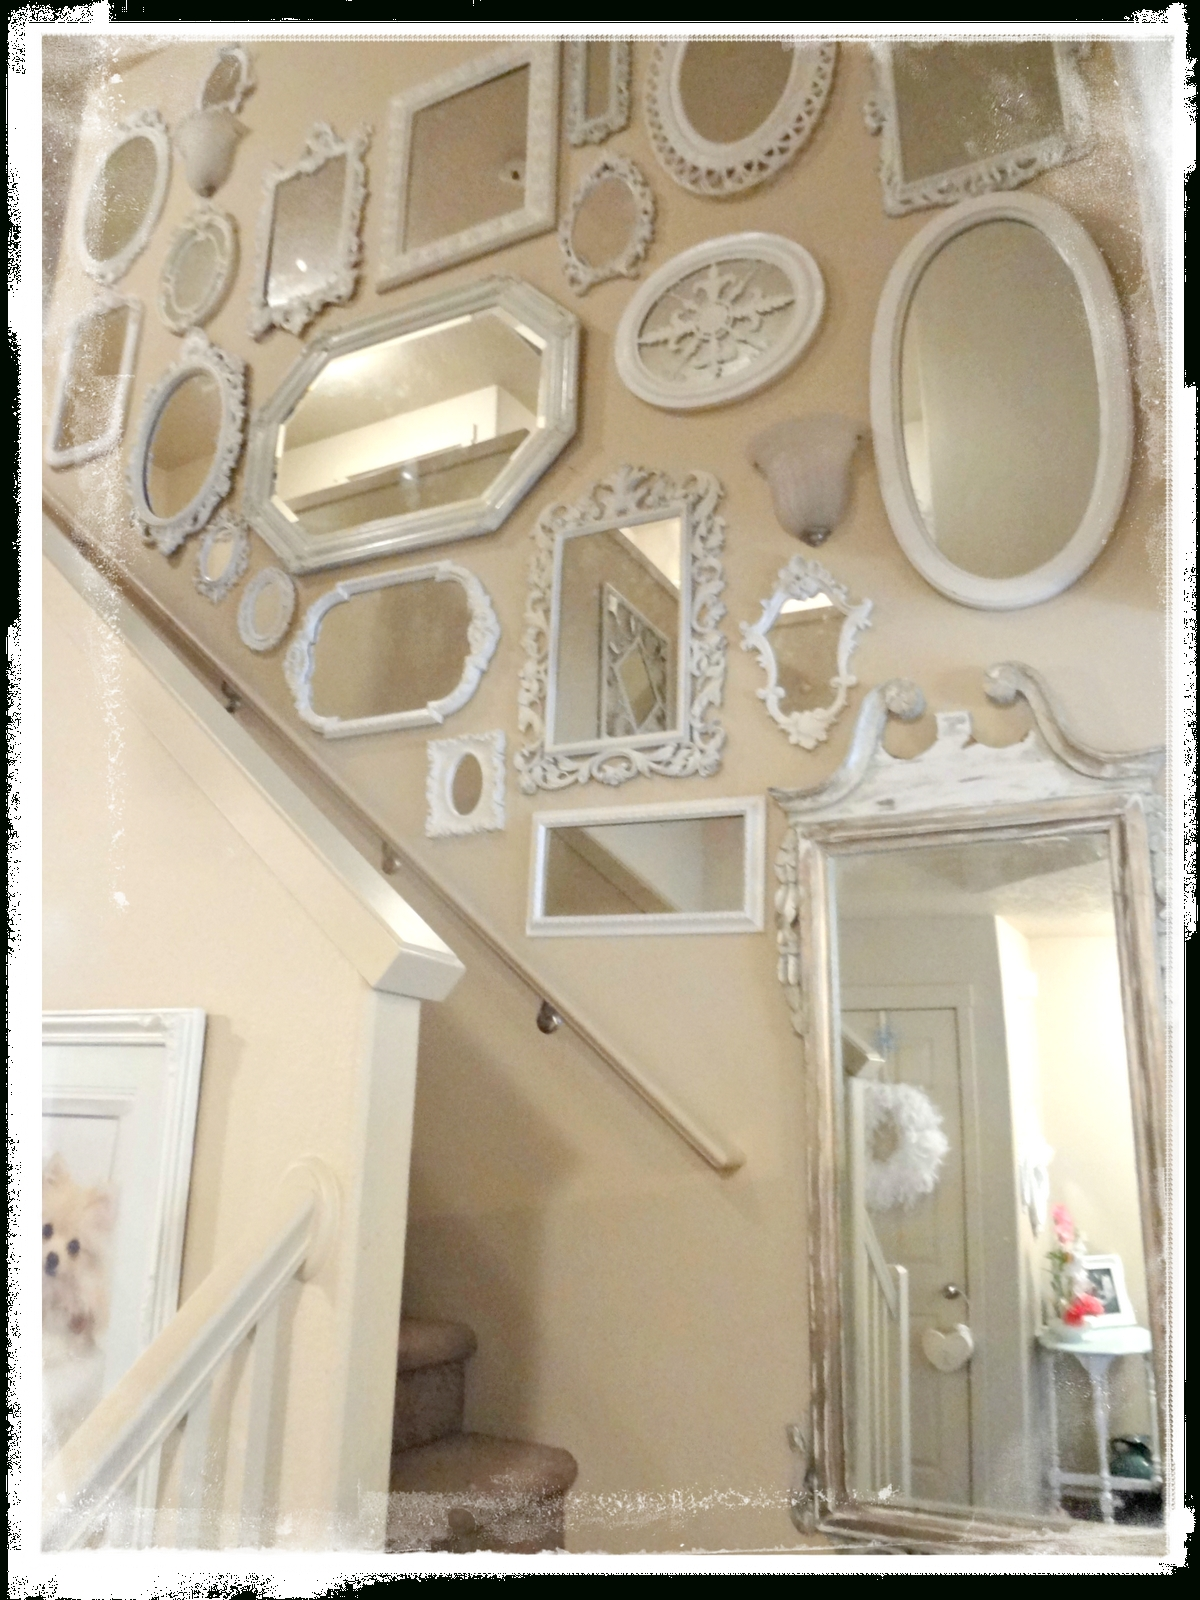 Not So Shabby – Shabby Chic: Mirrors, Flowers, & Fur Babies Throughout Shabby Chic Mirrors (Image 12 of 20)